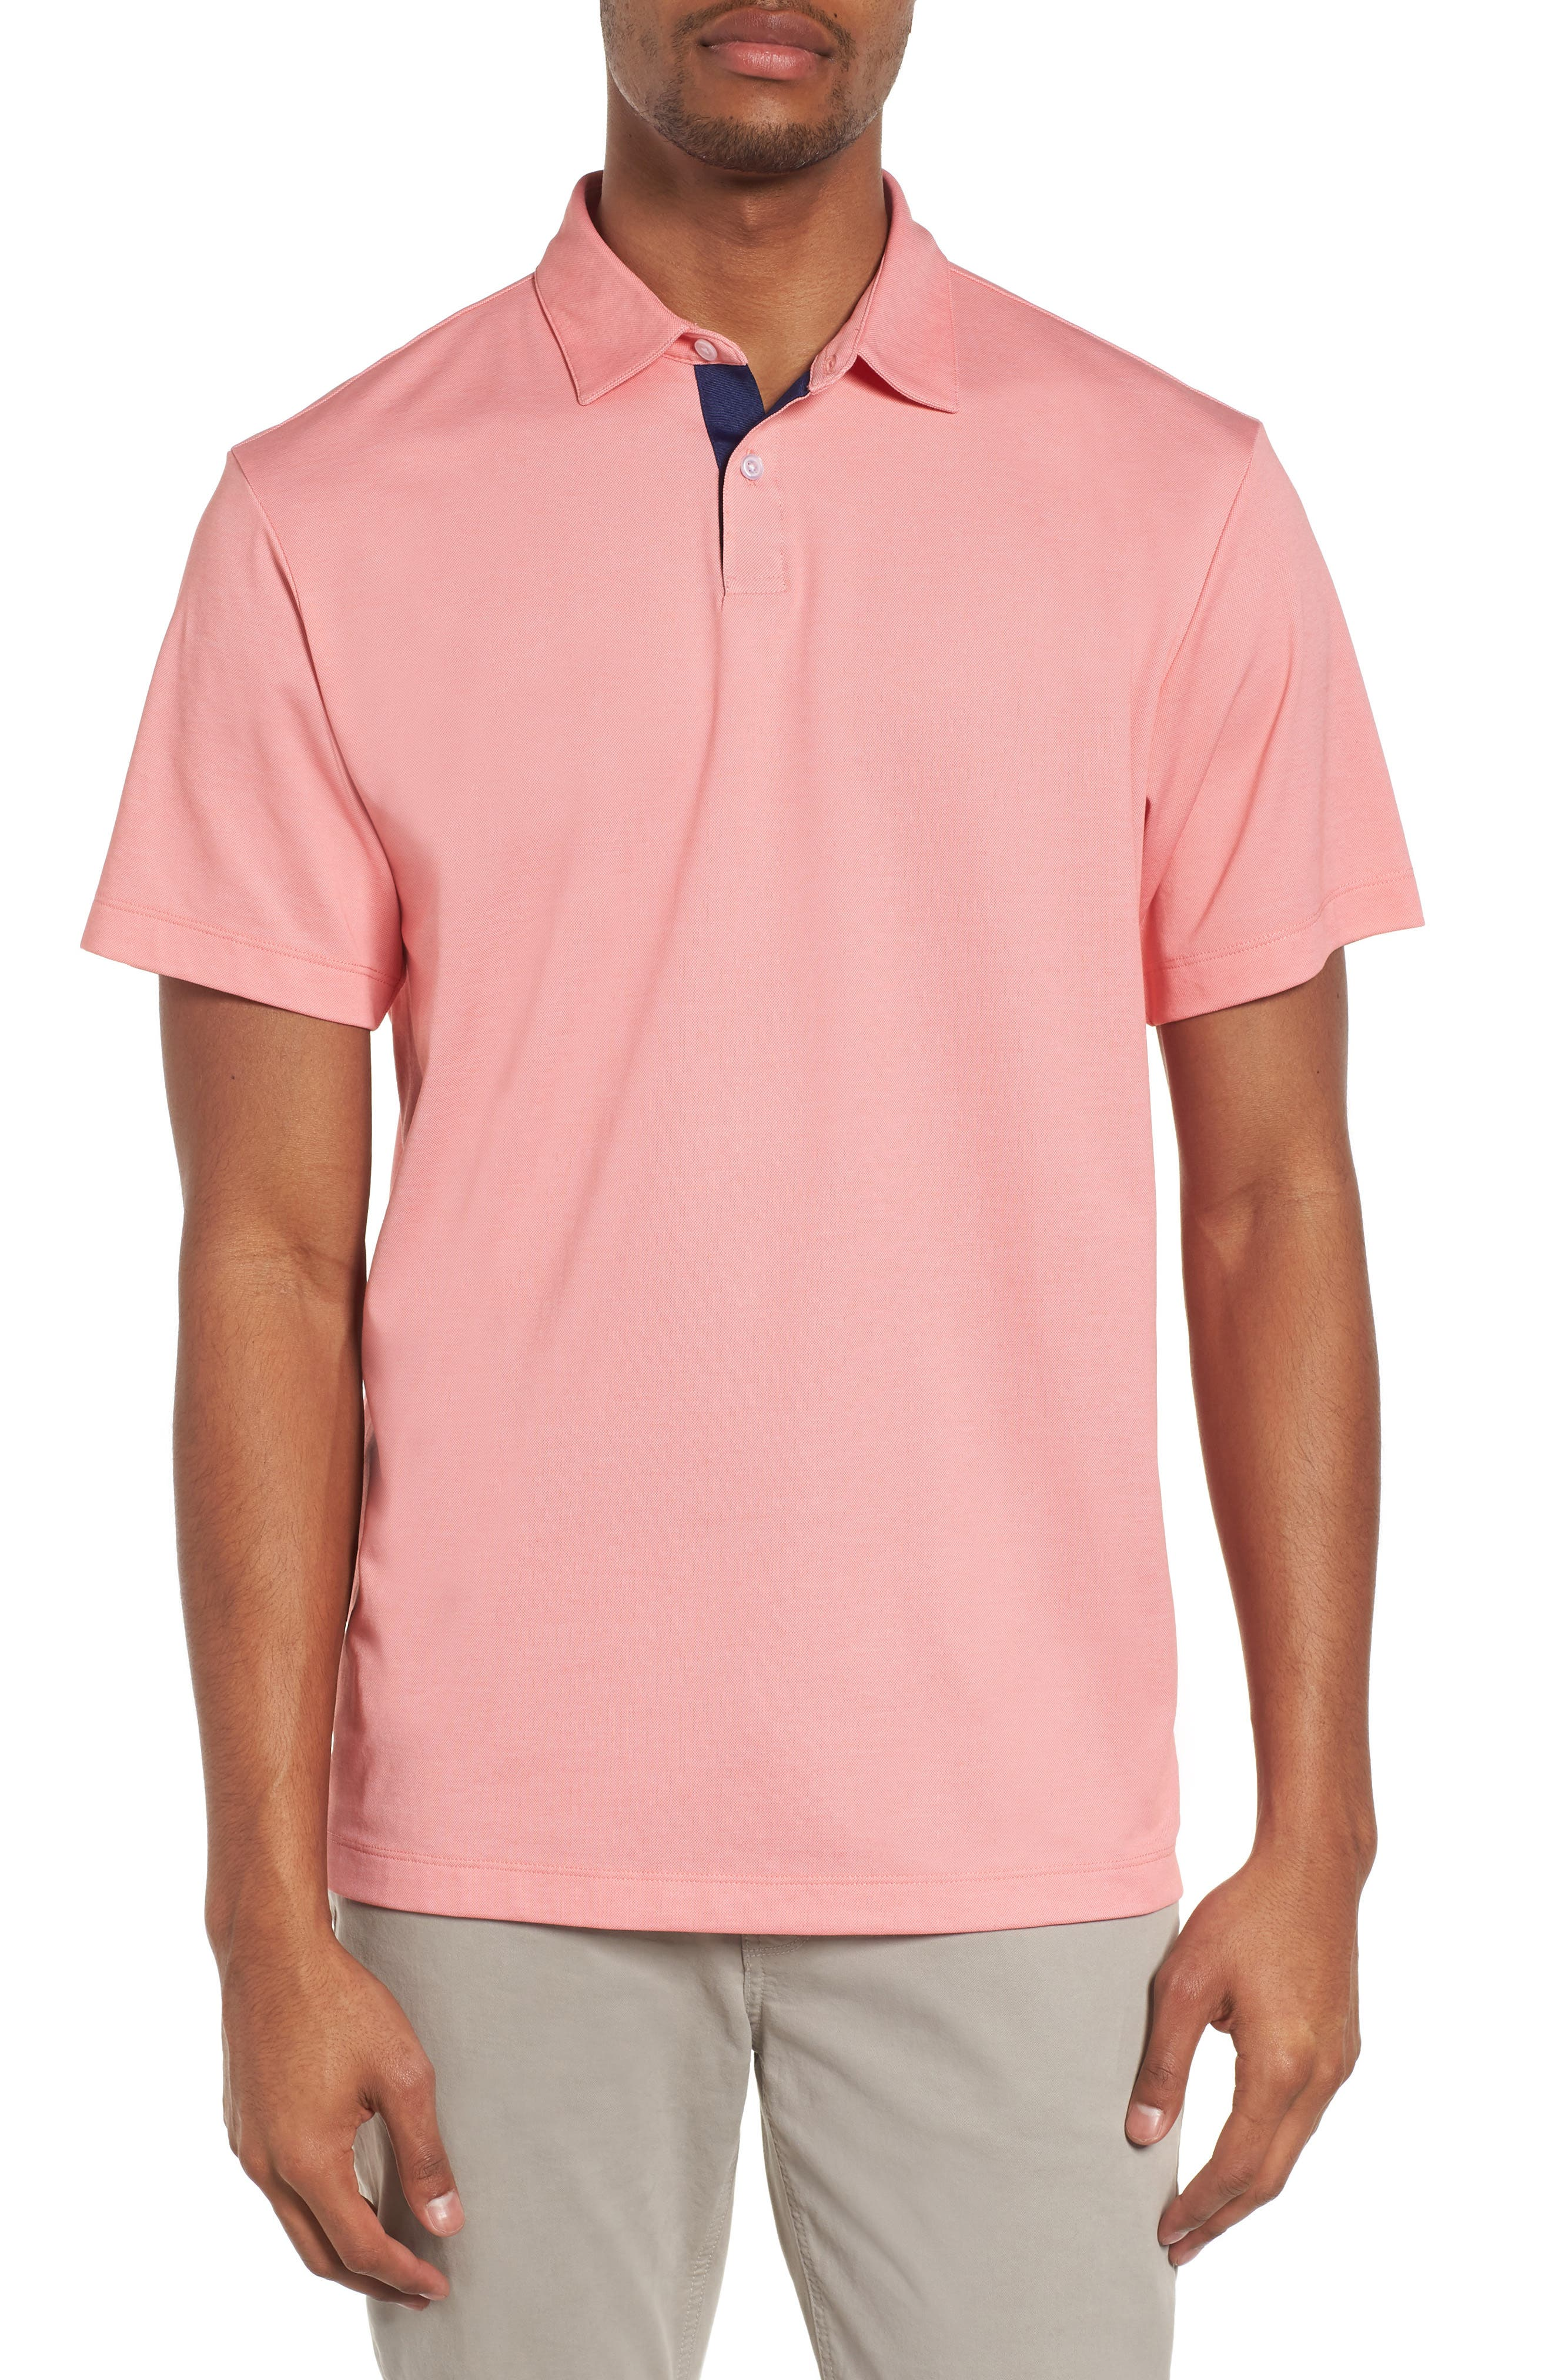 Andrew Regular Fit Piqué Polo,                         Main,                         color, Coral